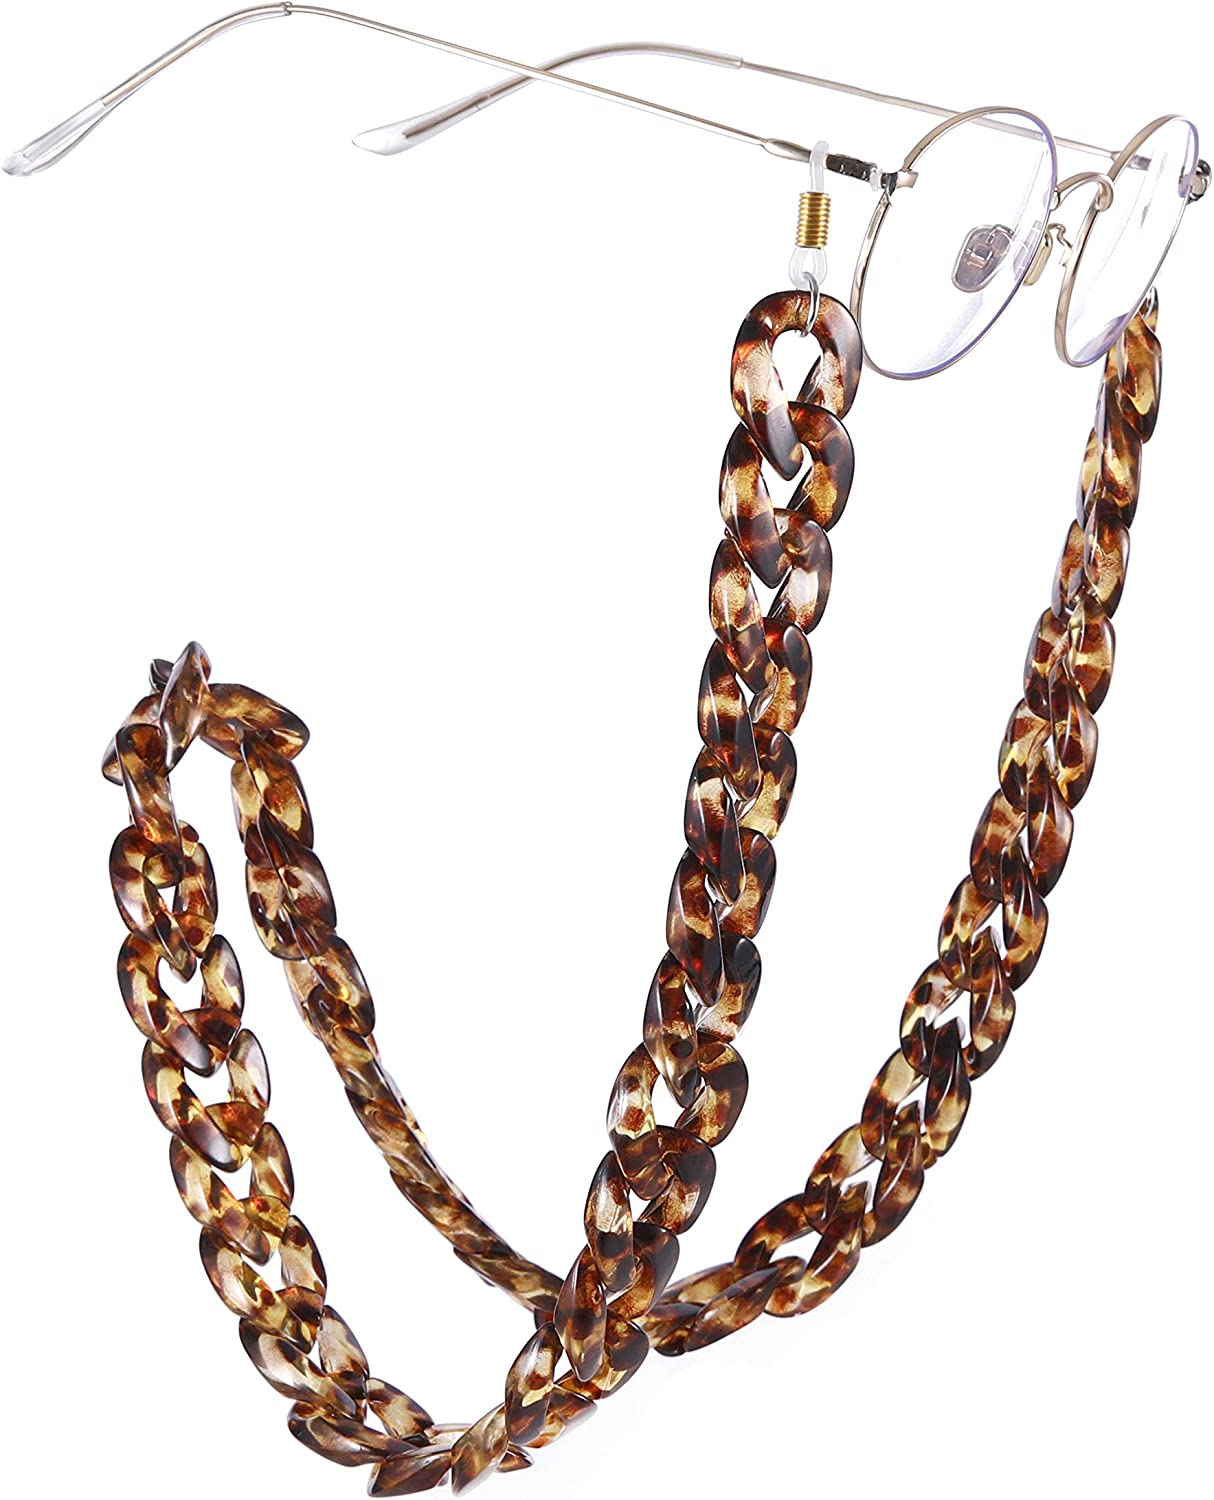 LIKGREAT Wild Leopard Eyeglass Chain Personalized Reading Glass Holder for Women Long Necklace Fashion Accessories